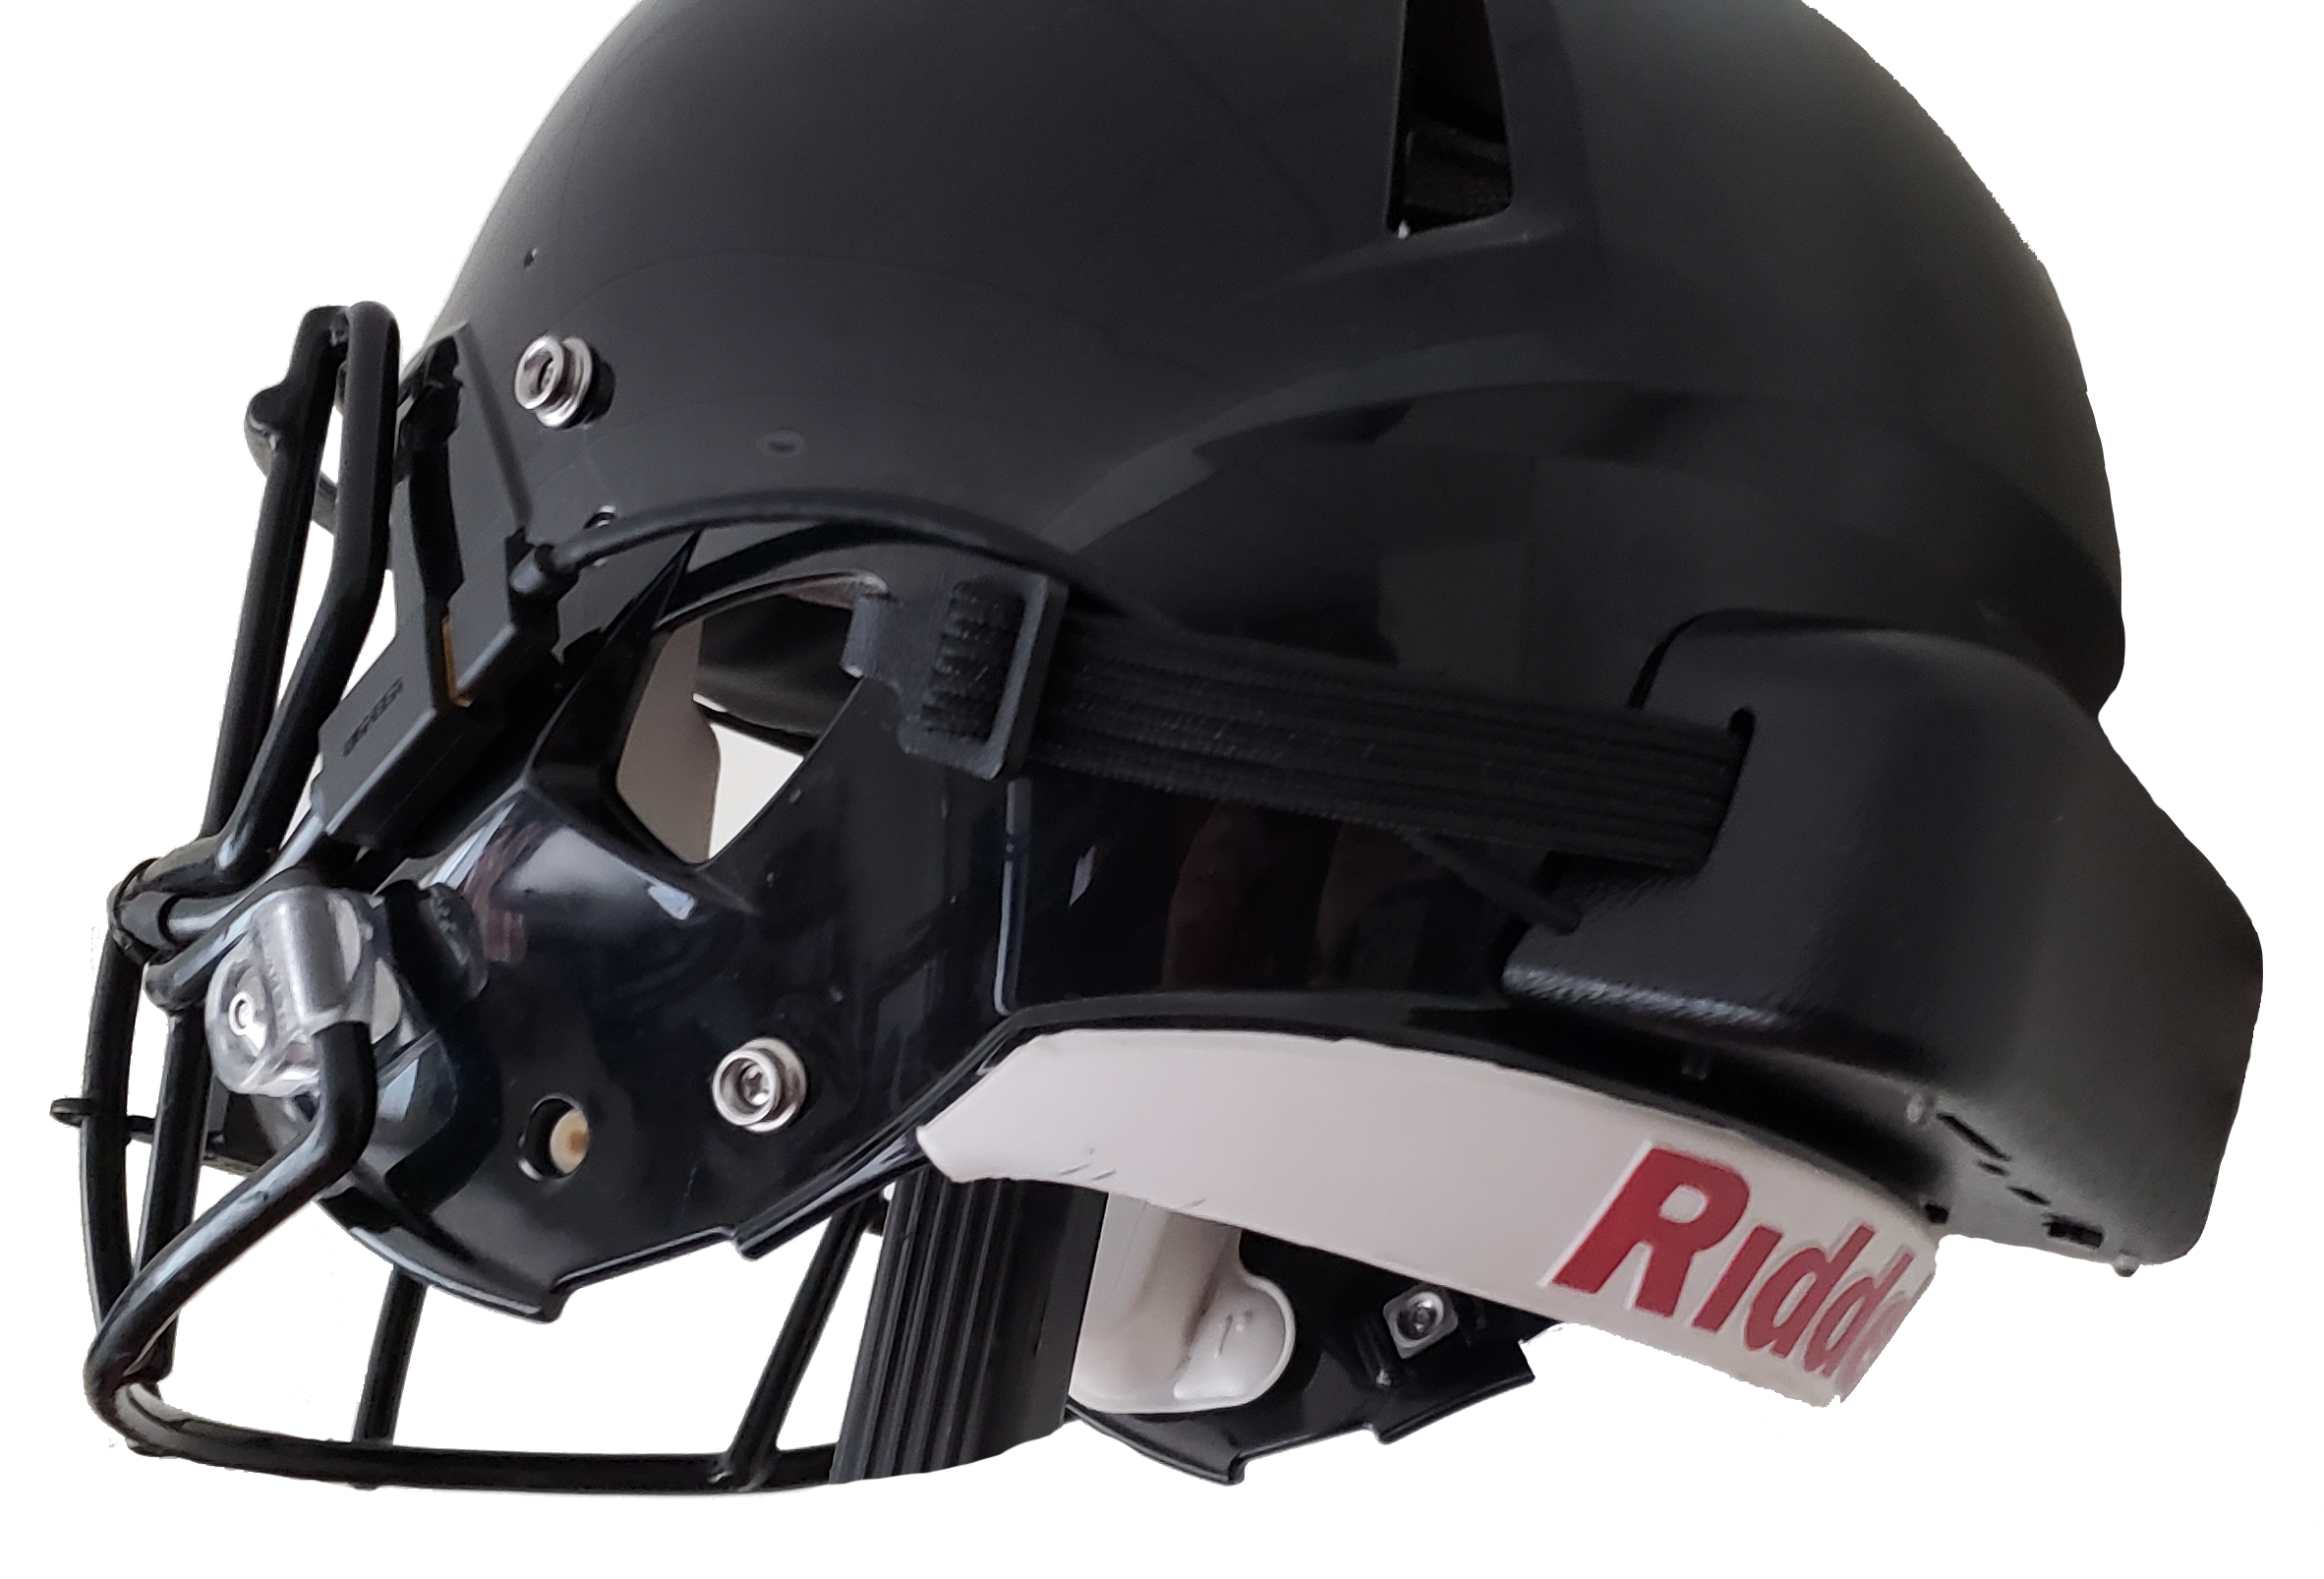 CPU seamlessly mounted to a Helmet